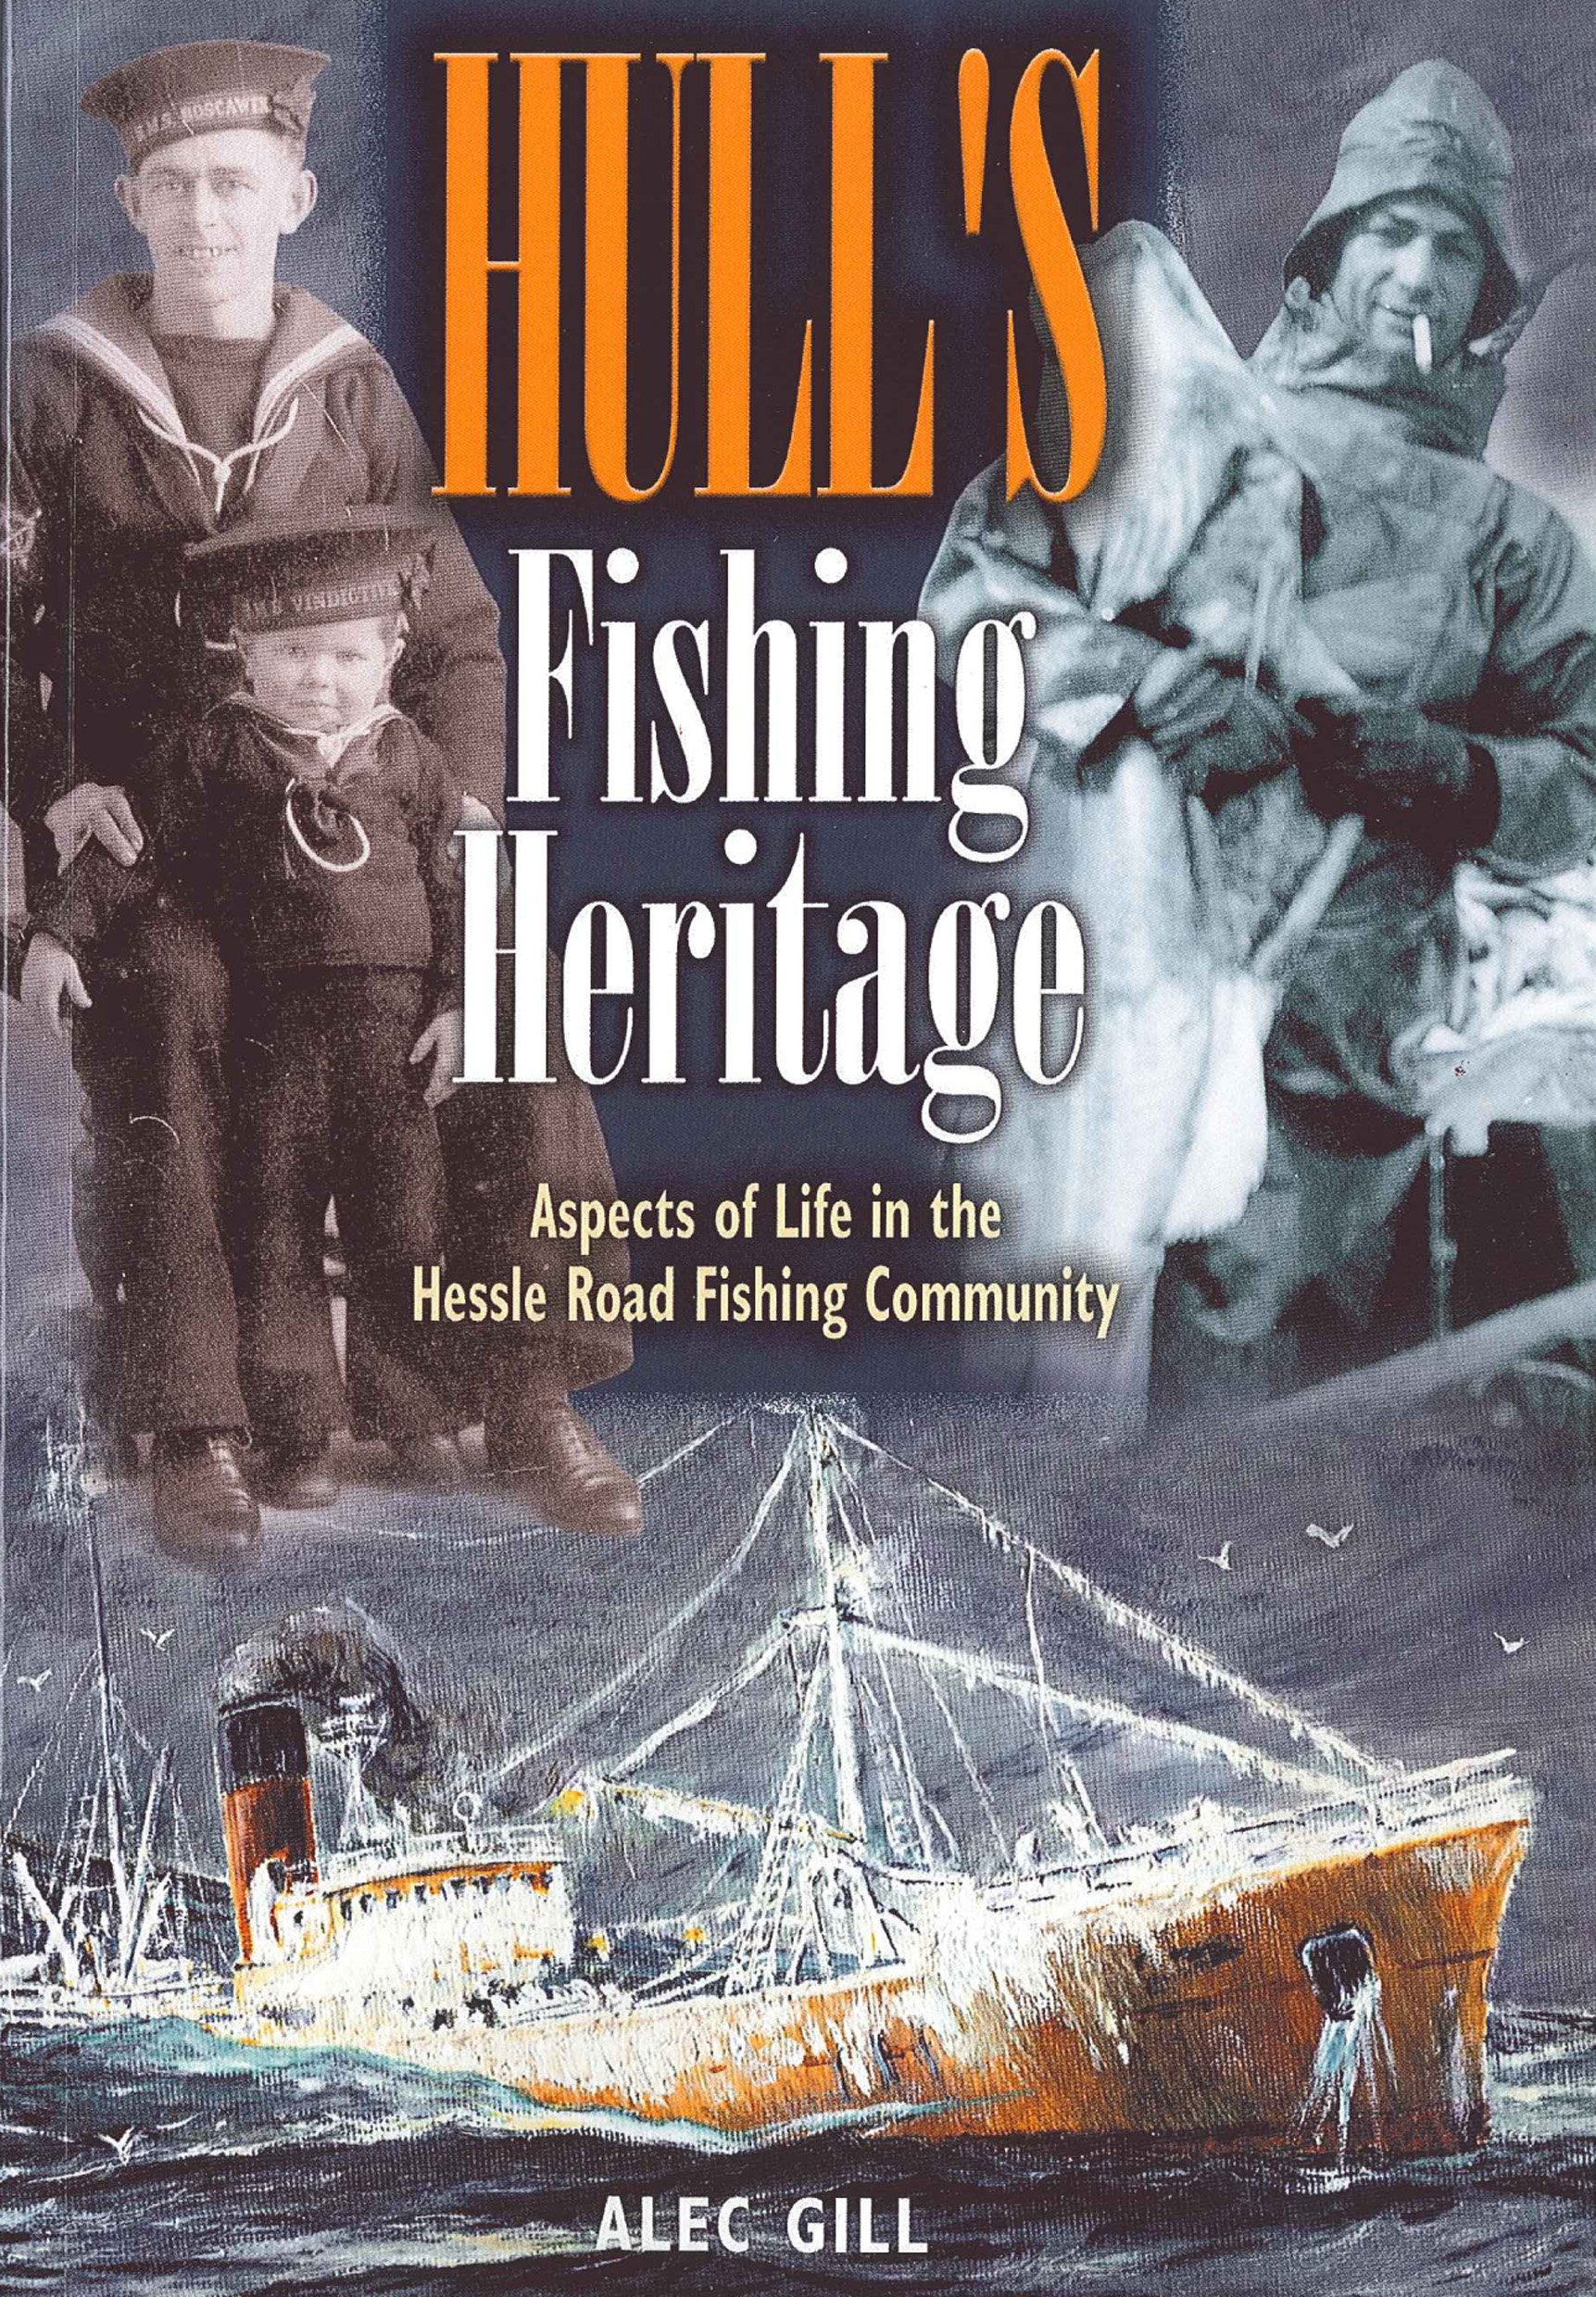 Hull's Fishing Heritage: Aspects of Life in the Hessle Road